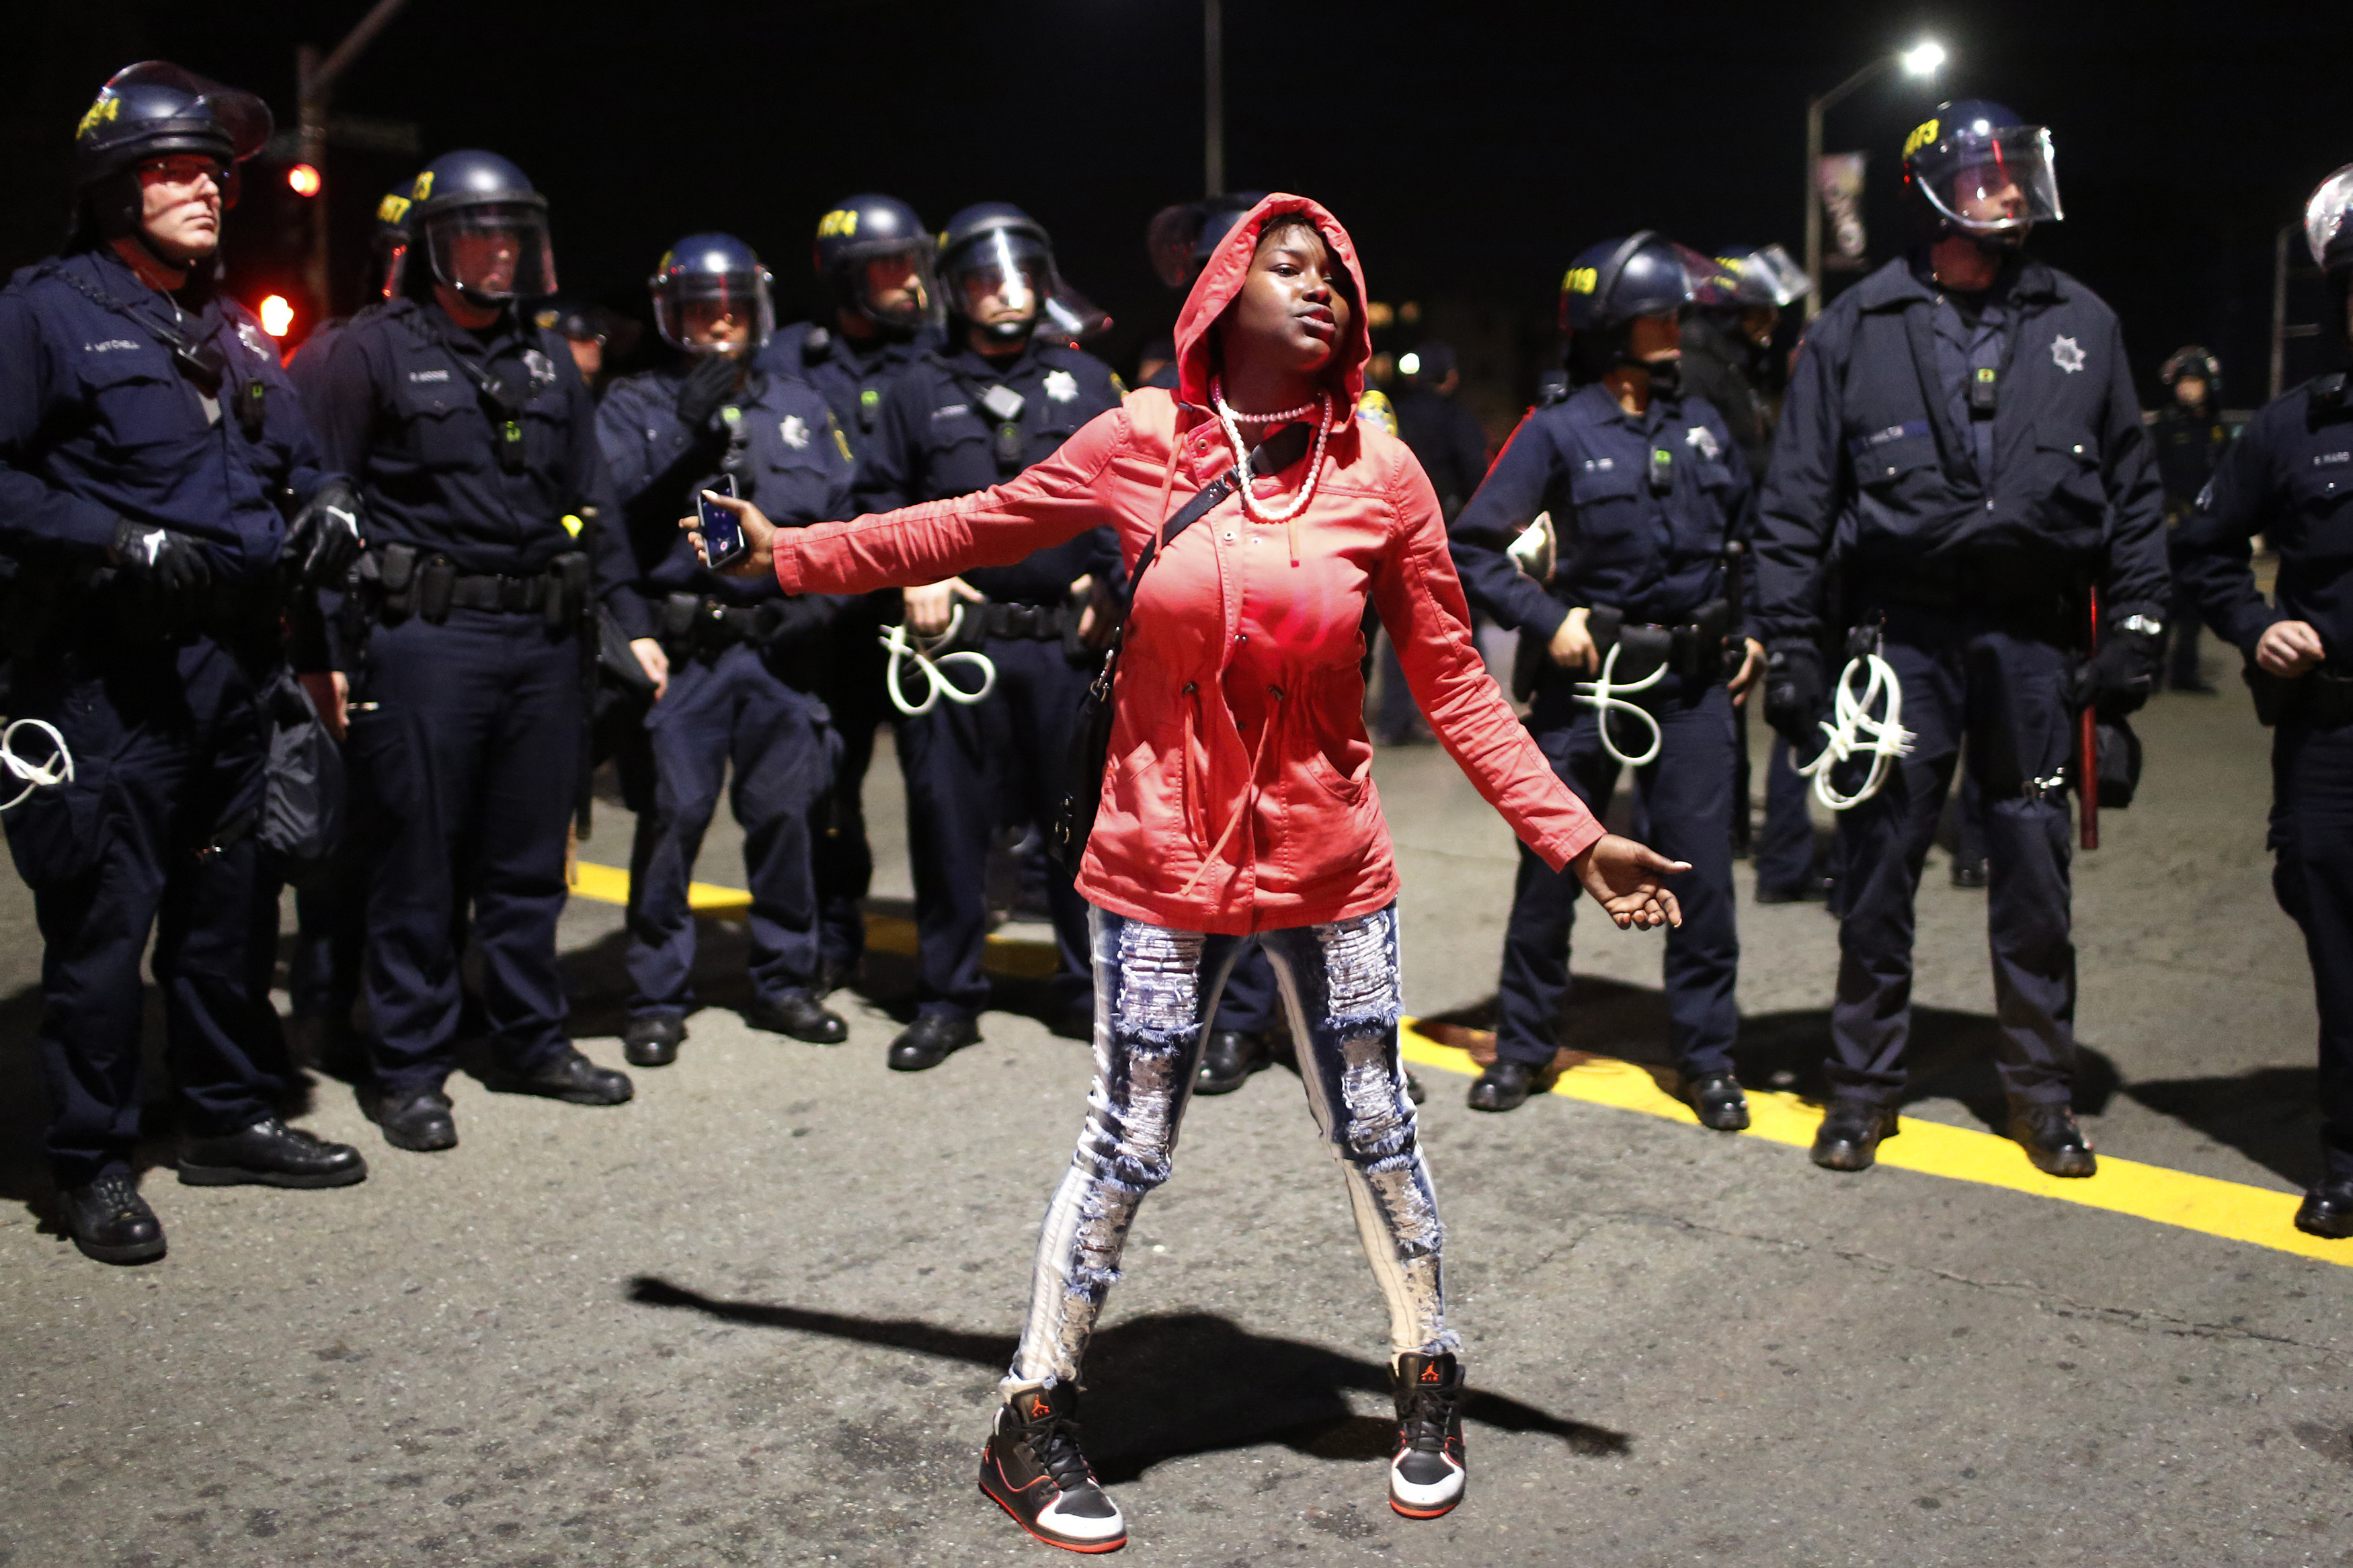 A woman takes part in a demonstration against police violence in Oakland, California in 2014.